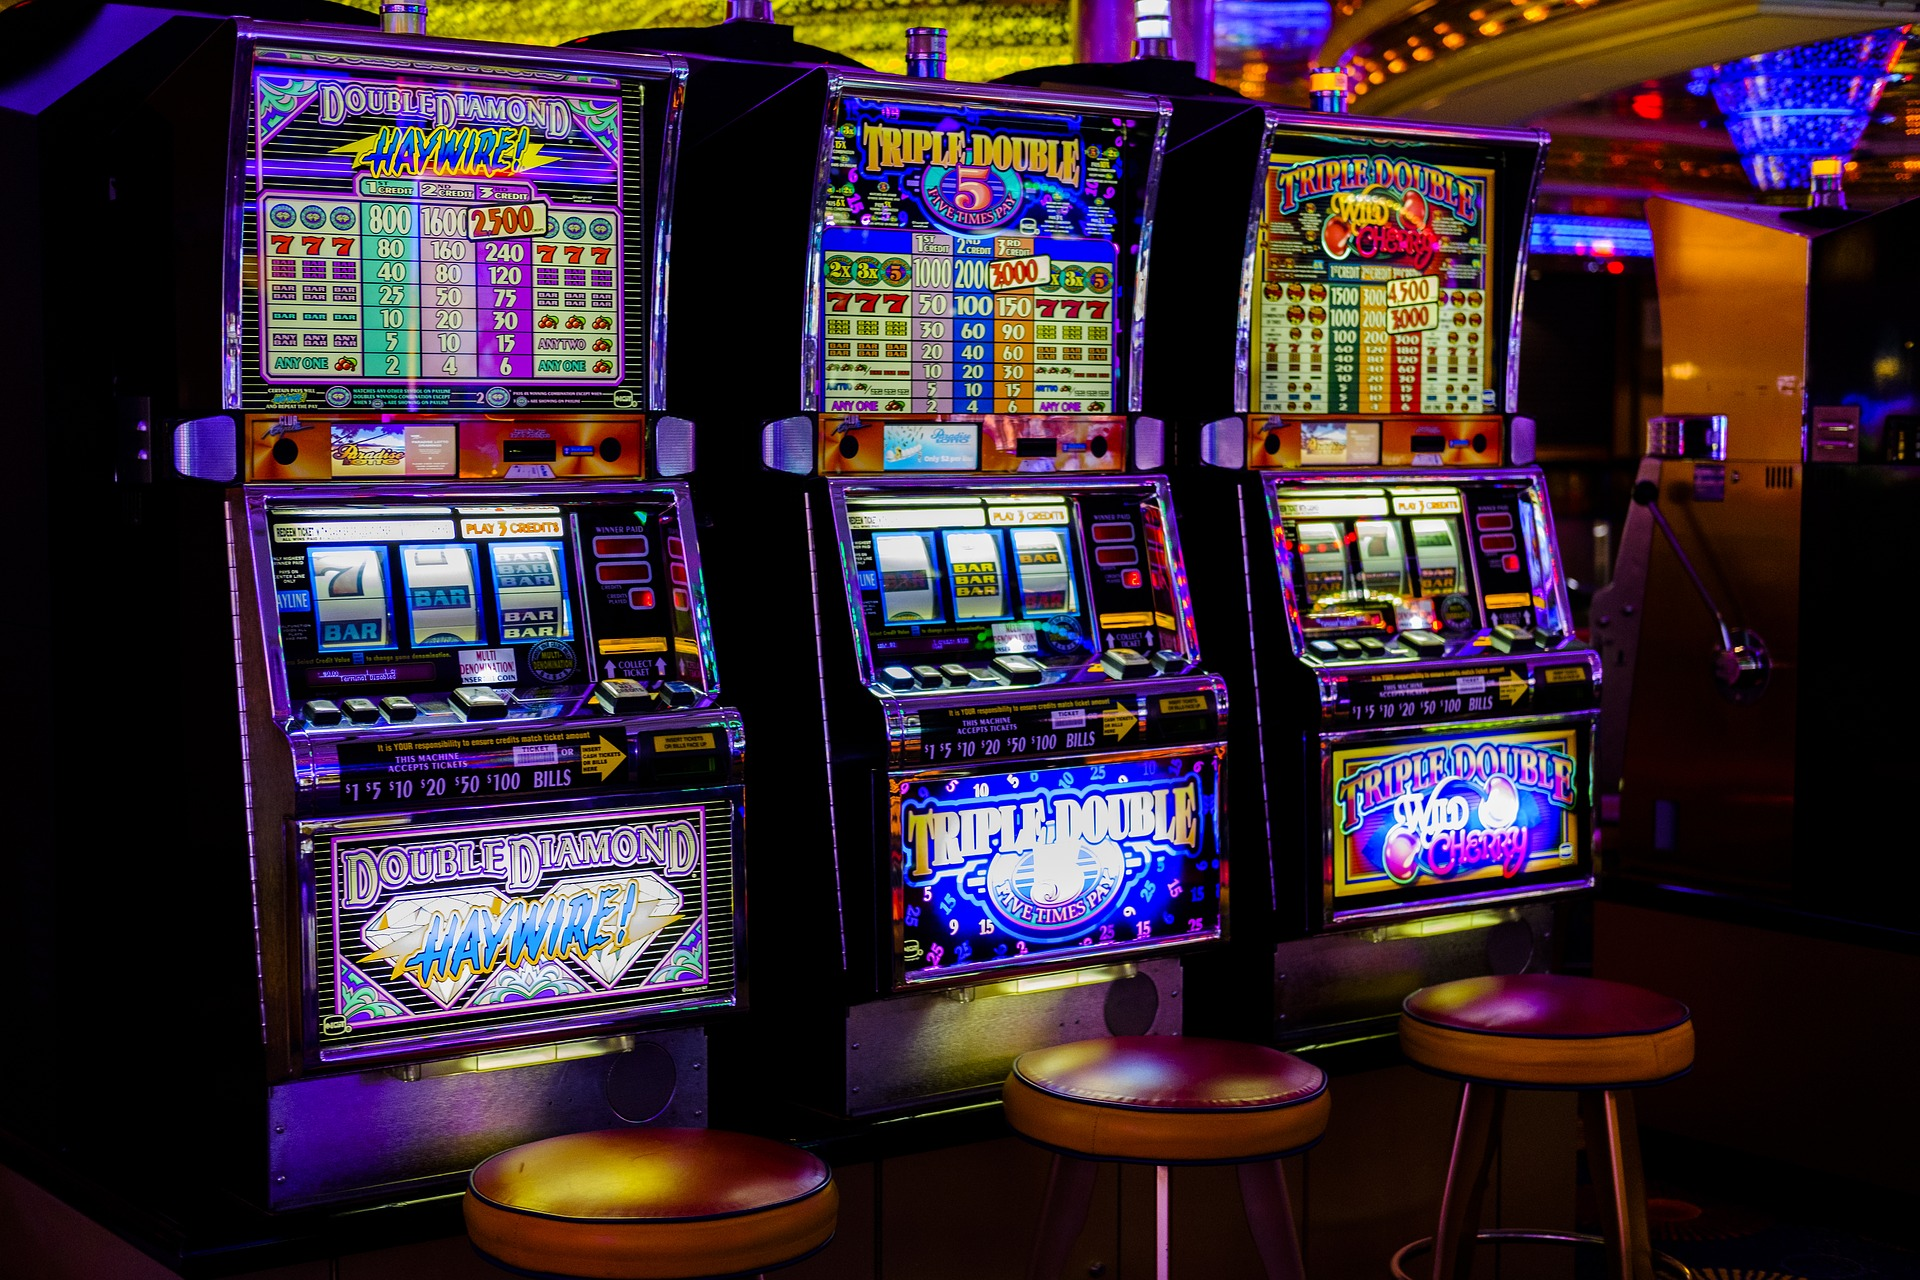 Pest prevention considers food crumbs and spilt drinks around slot machines in sporting clubs which may attract pests